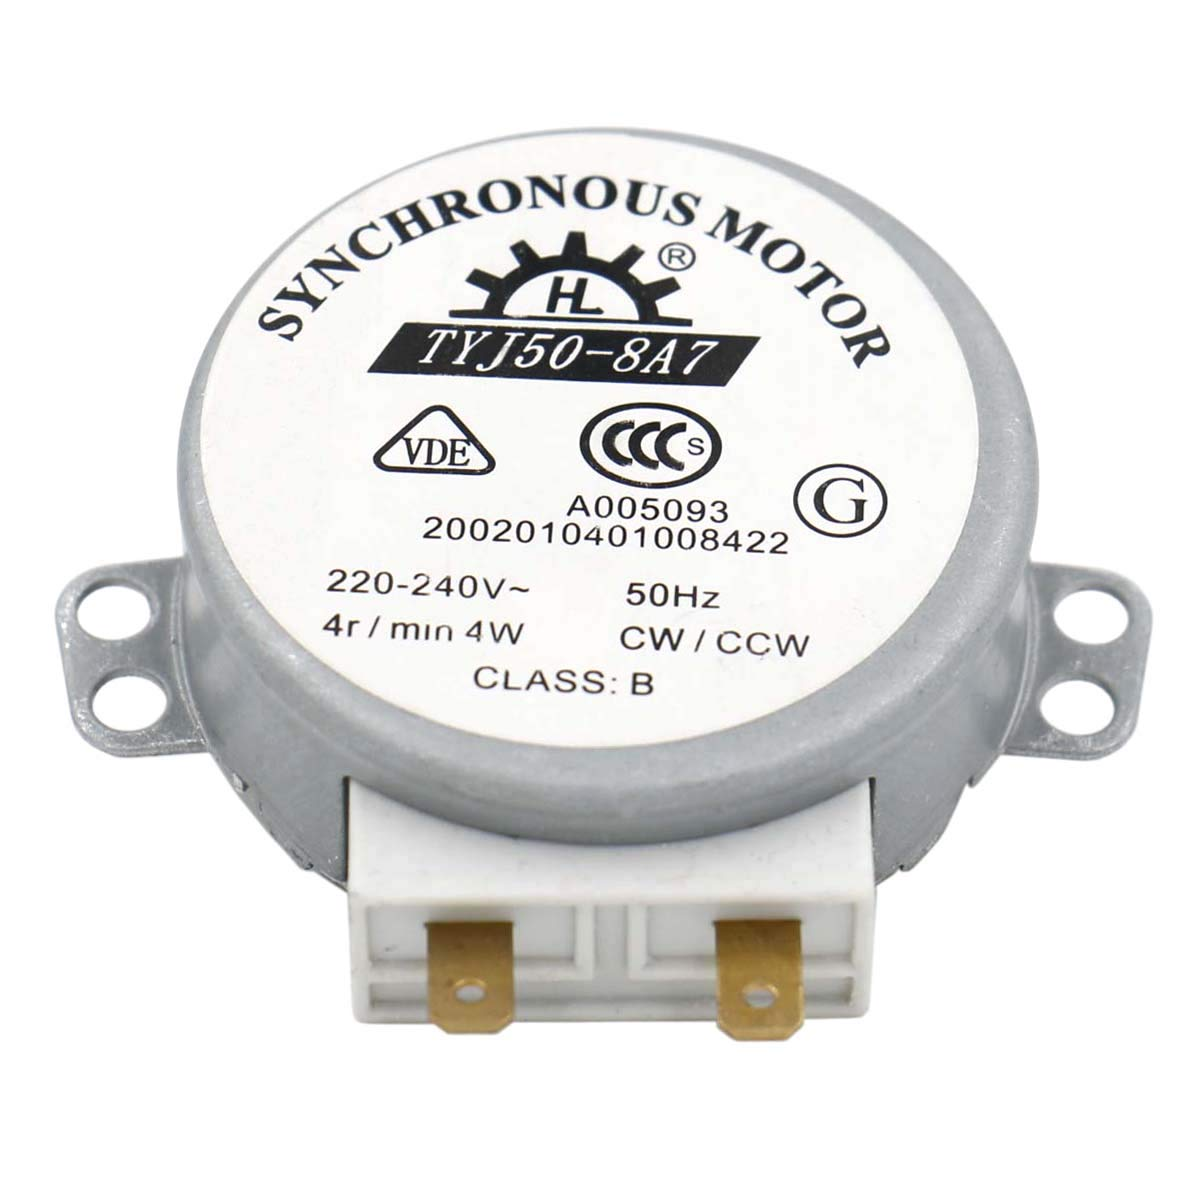 Heschen Synchronous Motor TYJ50-8A7 220-240V AC 4R/Min CW/CCW 50Hz for microwave oven Turn Table VDE listed